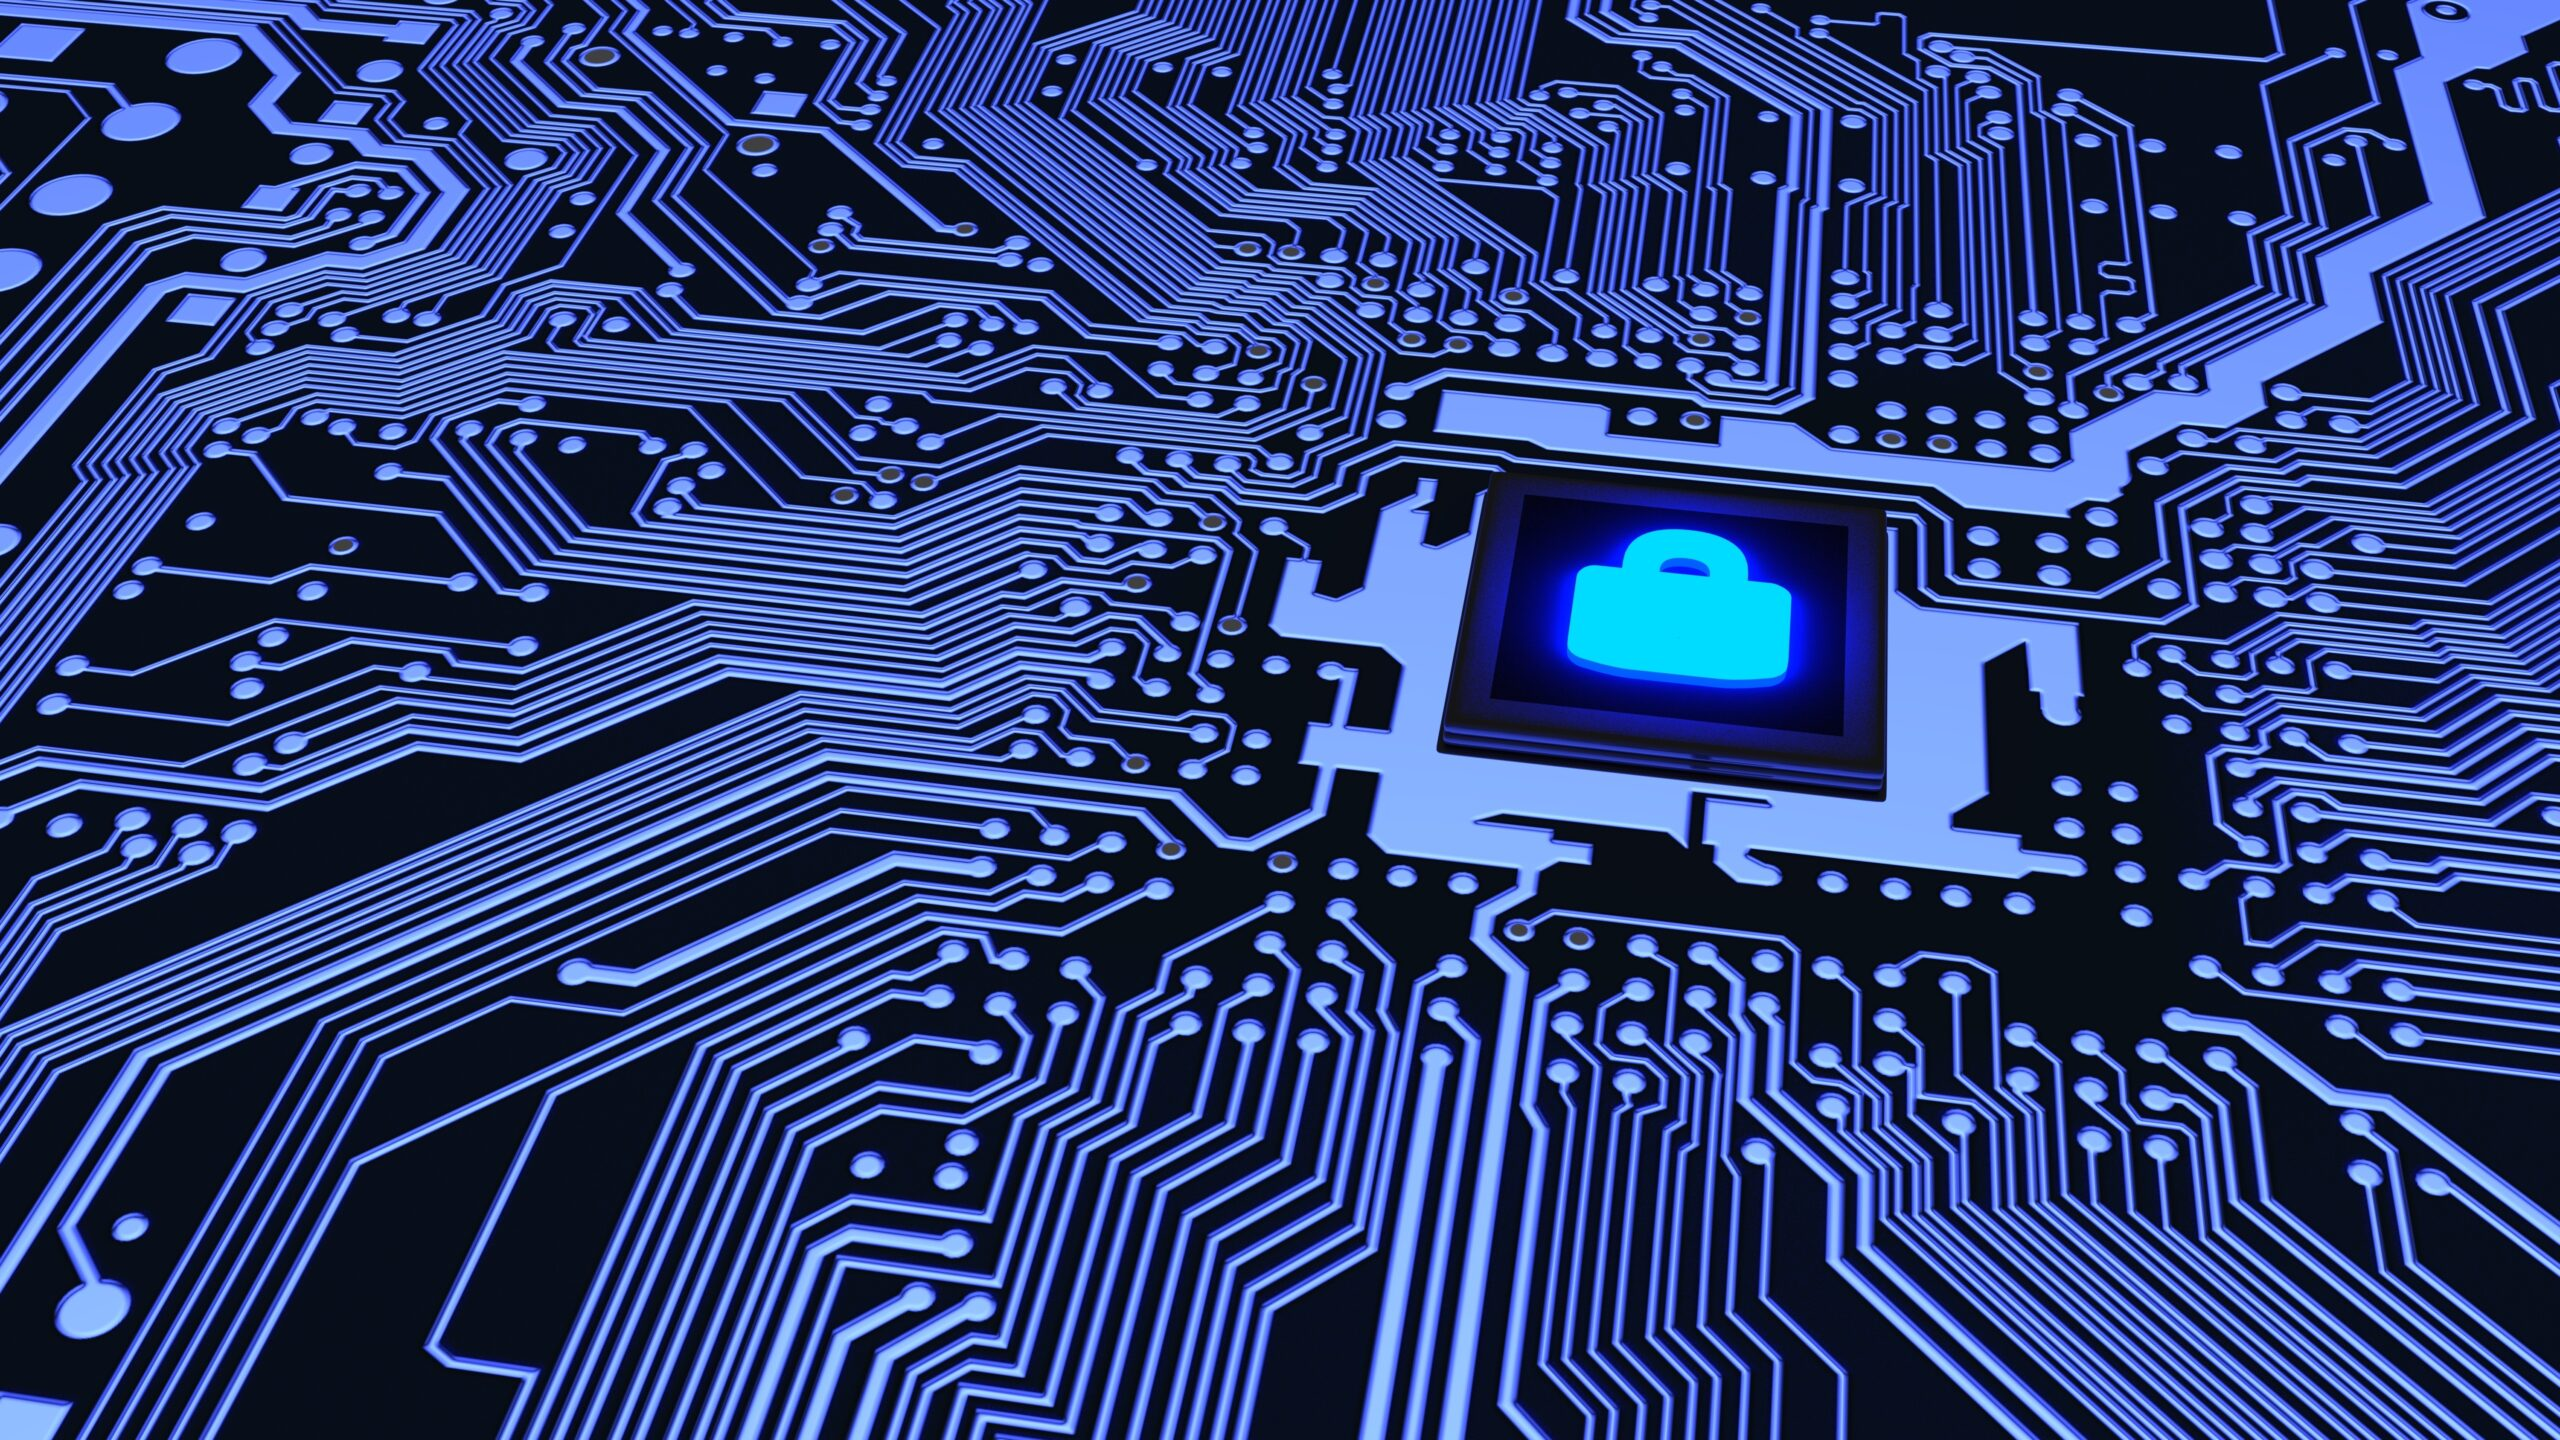 Cybersecurity hiring levels in the tech industry rose to a year-high in August 2021